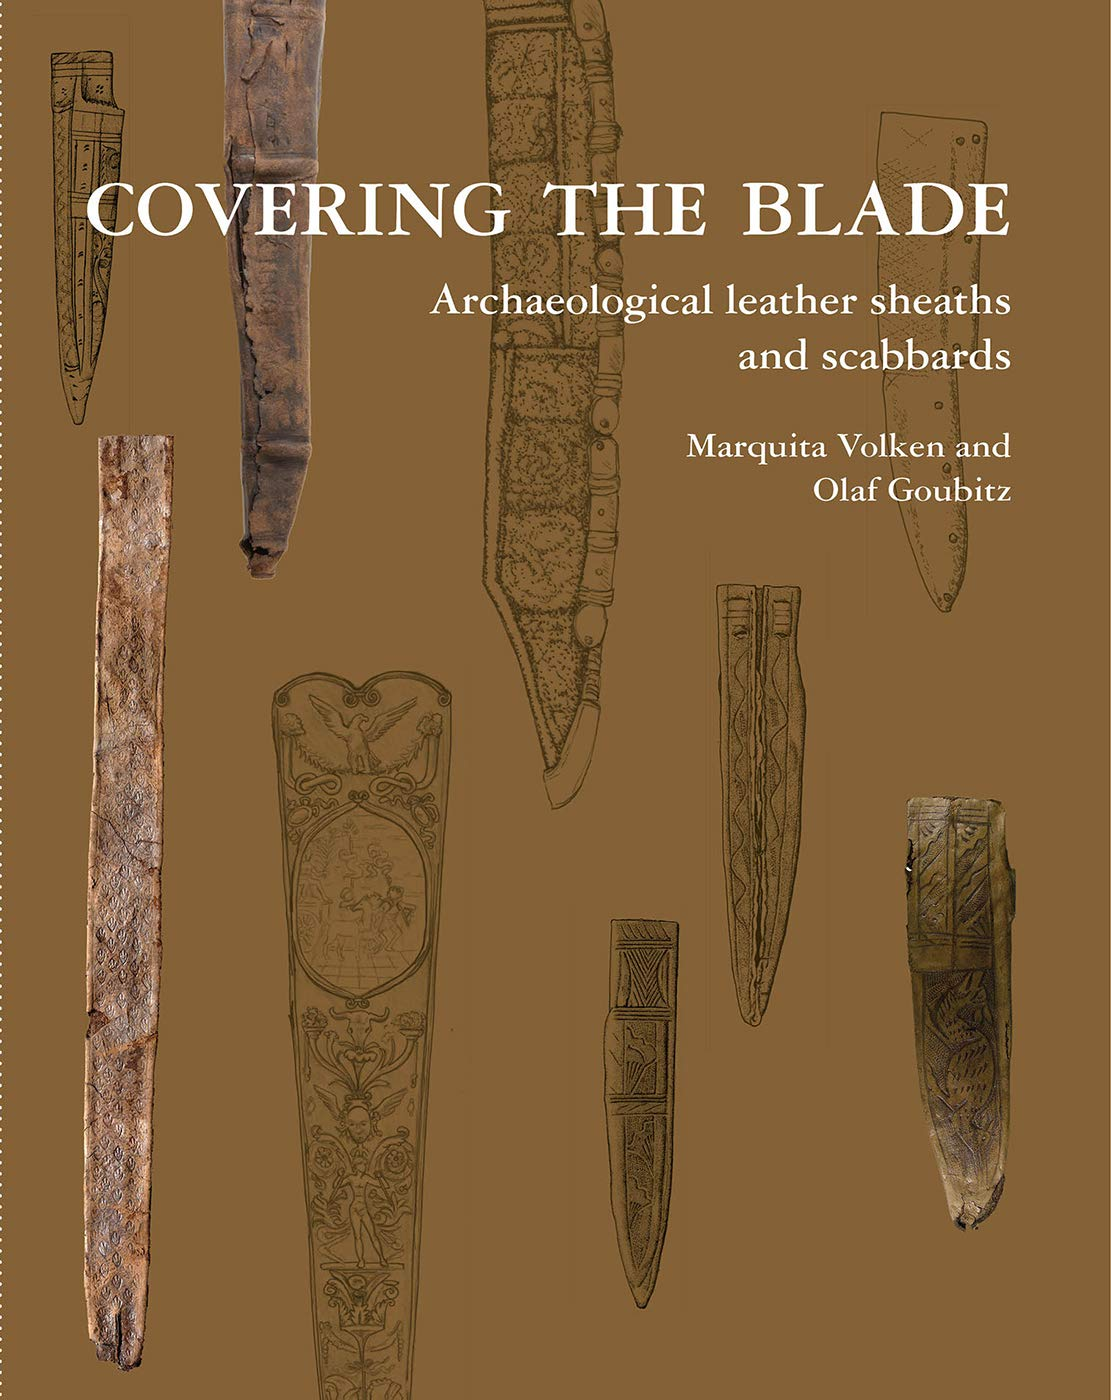 Covering the Blade: Archaeological Leather Sheaths and Scabbards Marquita Volken, Olaf Goubitz